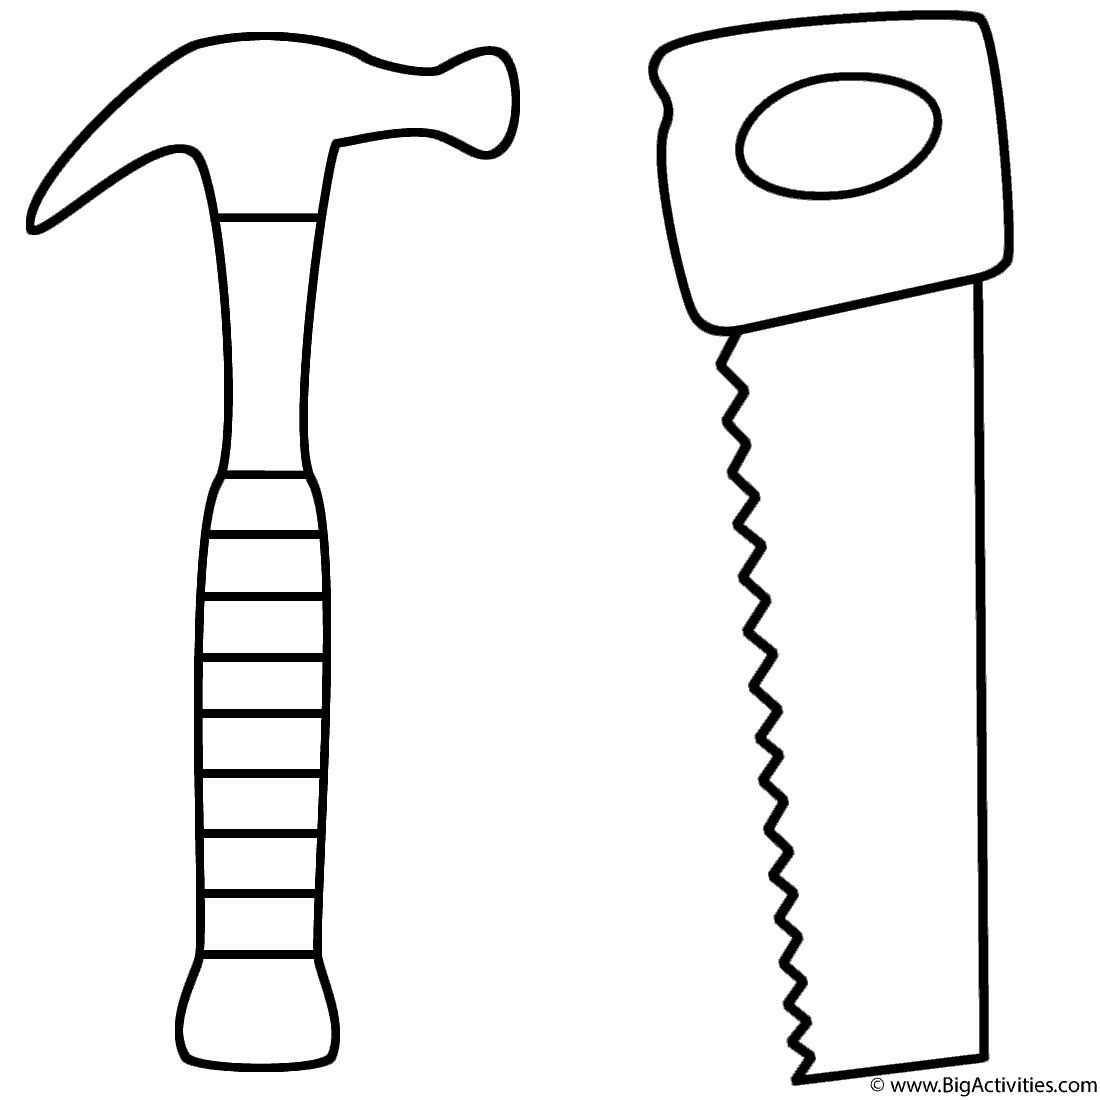 Hammer And Saw Coloring Page Tools